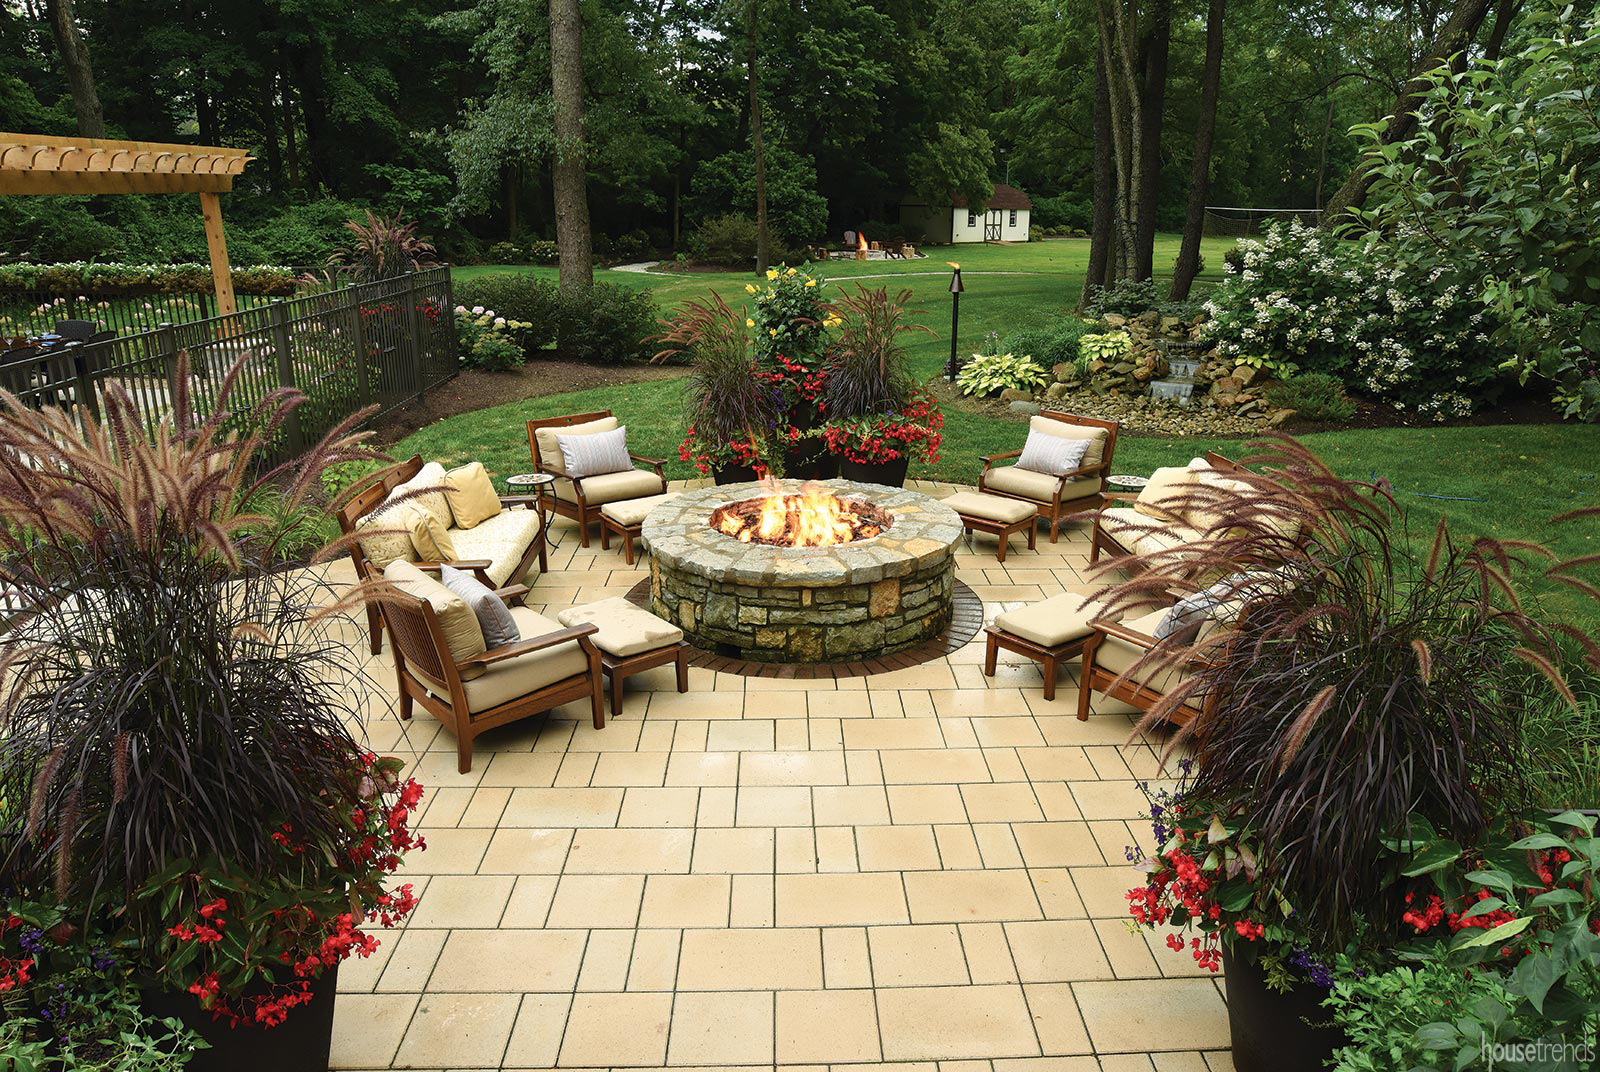 Cushioned chairs surround a gas fire pit